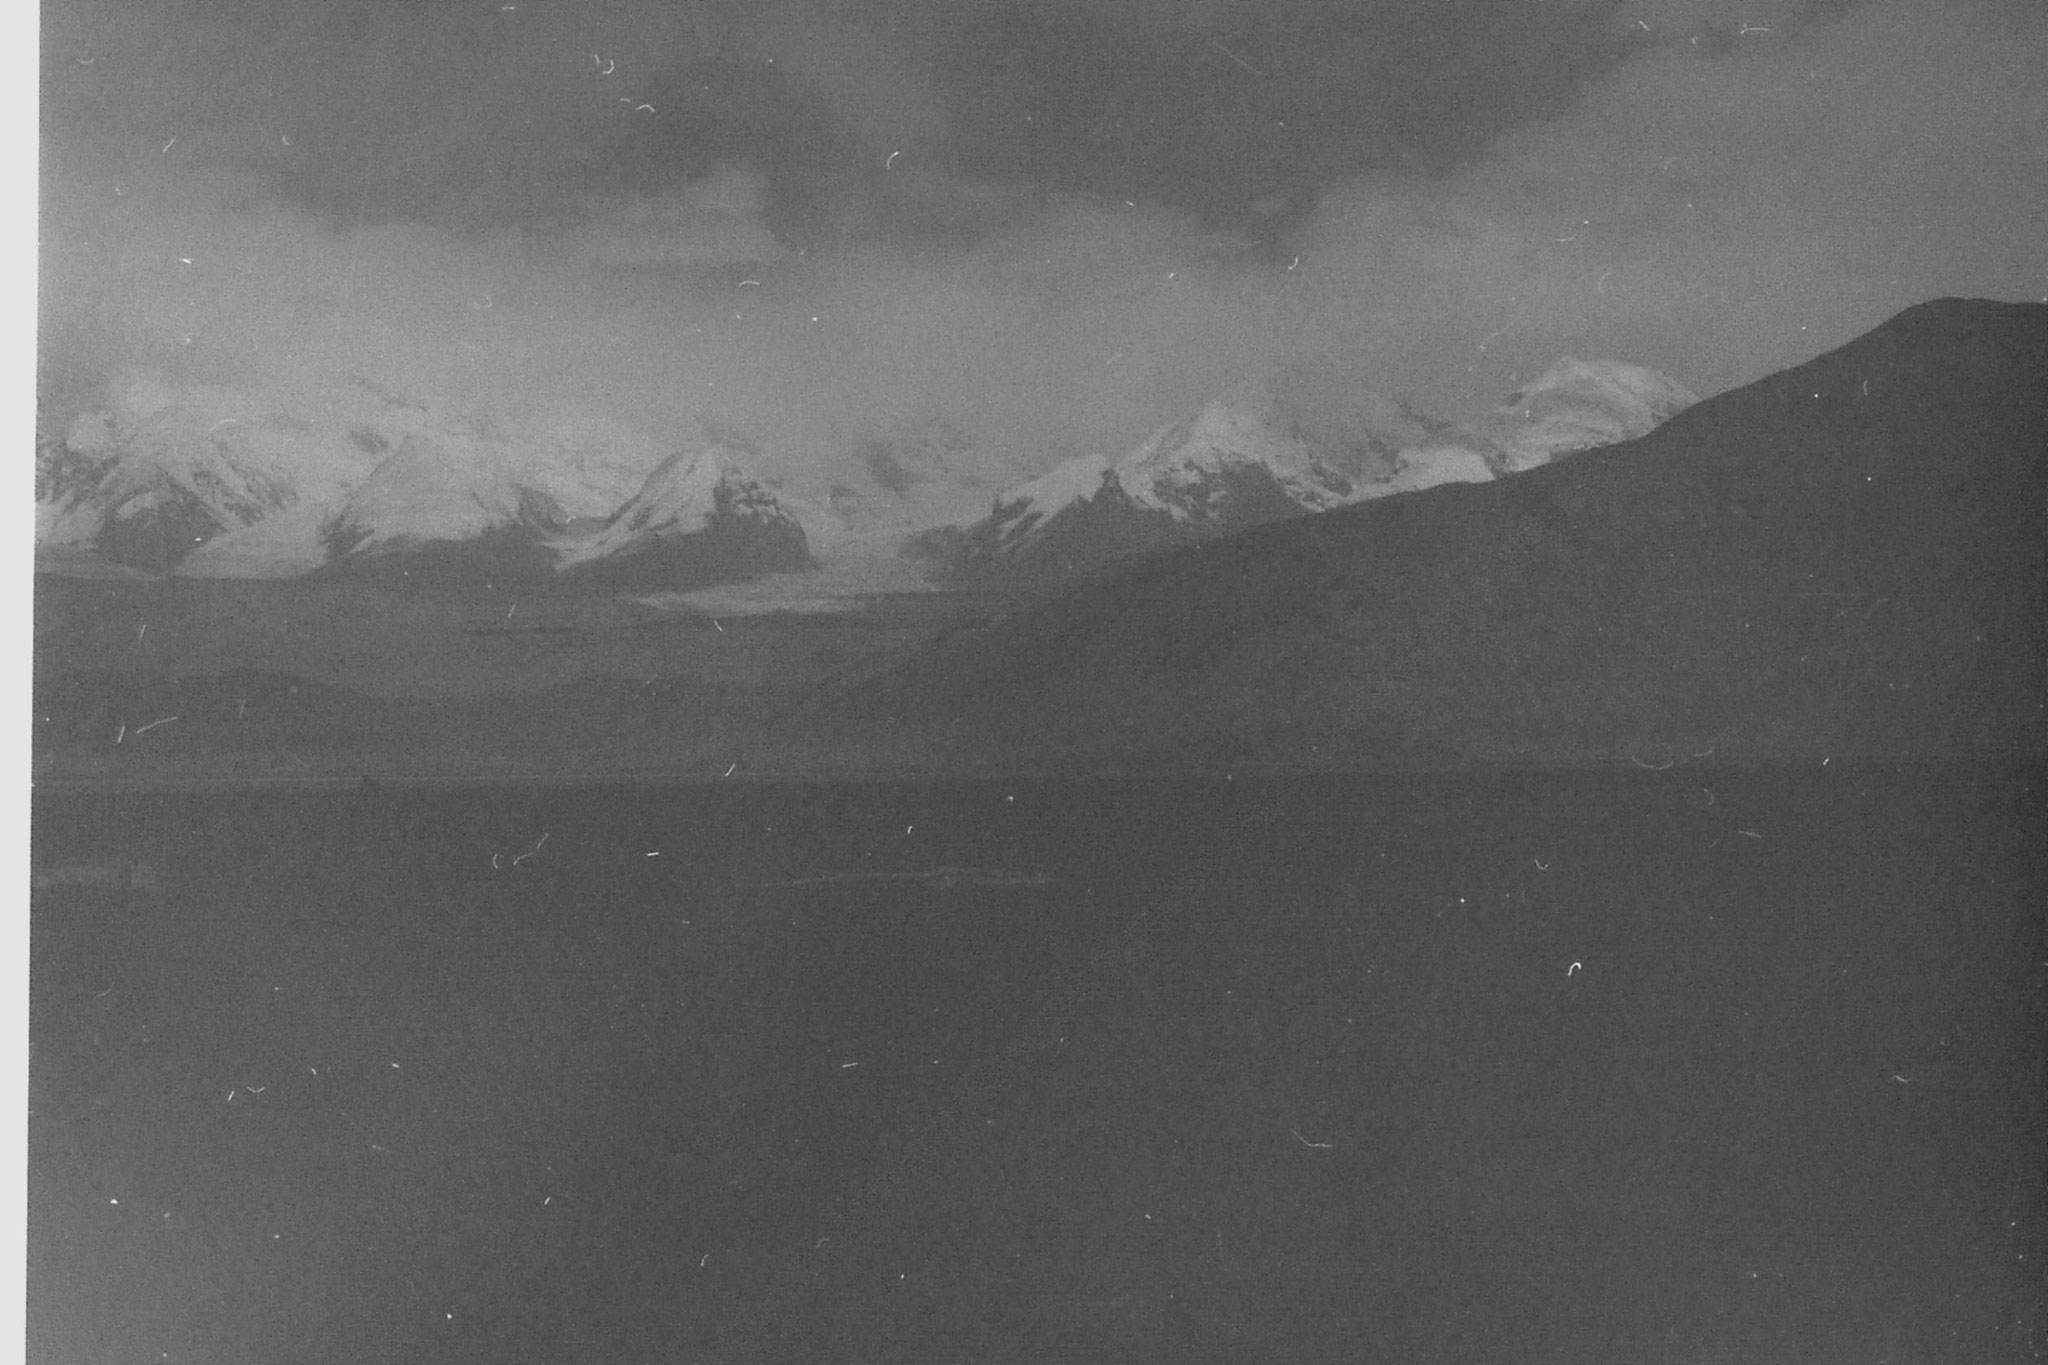 10/9/1989: 11: Lake Karakul